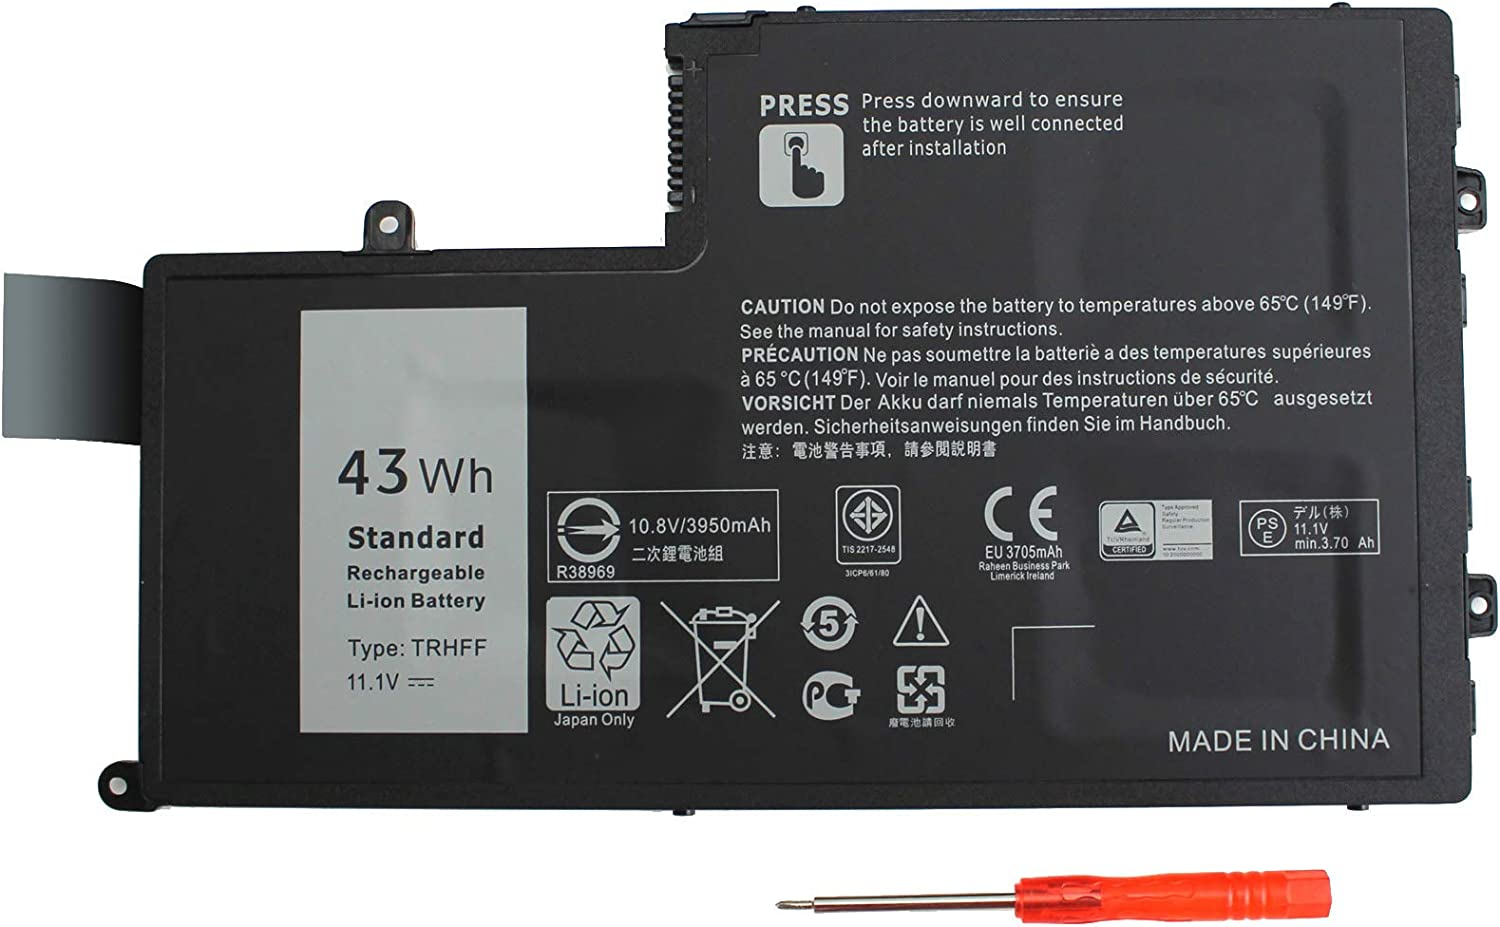 43WH TRHFF Notebook Battery Compatible Dell Inspiron 5445 5447 5545 5547 5548 N5447 N5547 15-5000 Series I5547-3750SLV Latitude 14 3450 15 3550 1V2F6 01V2F6 0PD19 1WWHW Laptop Batteries